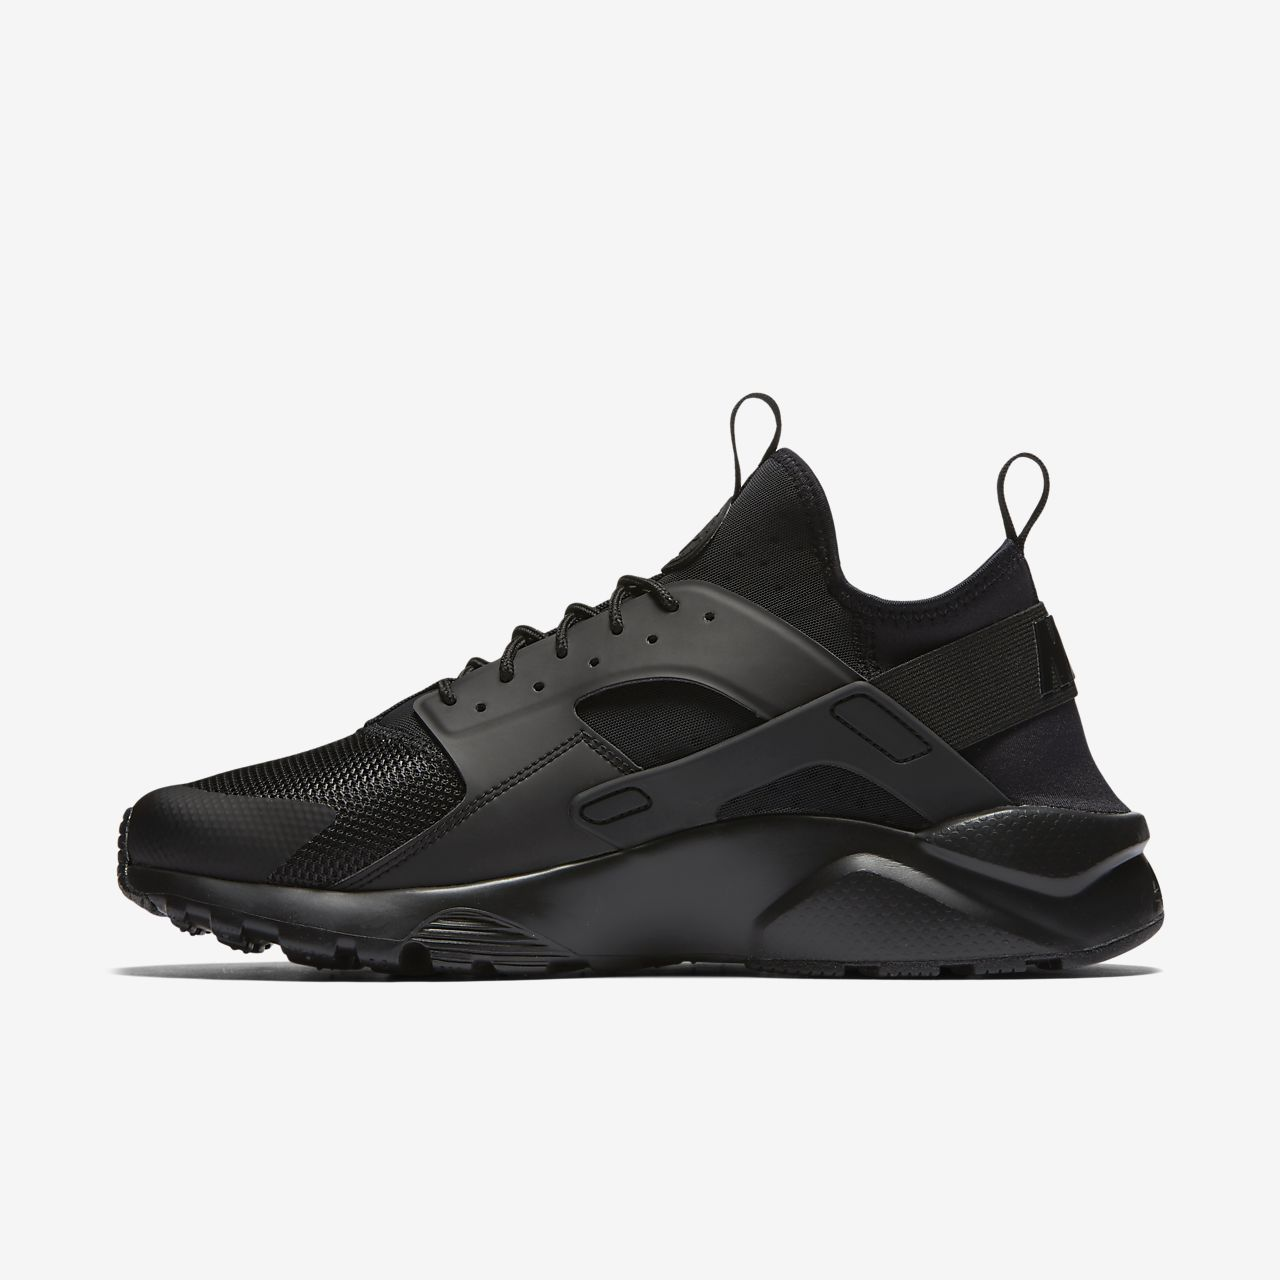 Nike Air Huarache Men's Sneakers Casual Running Athletic Basketball Comfort NIB